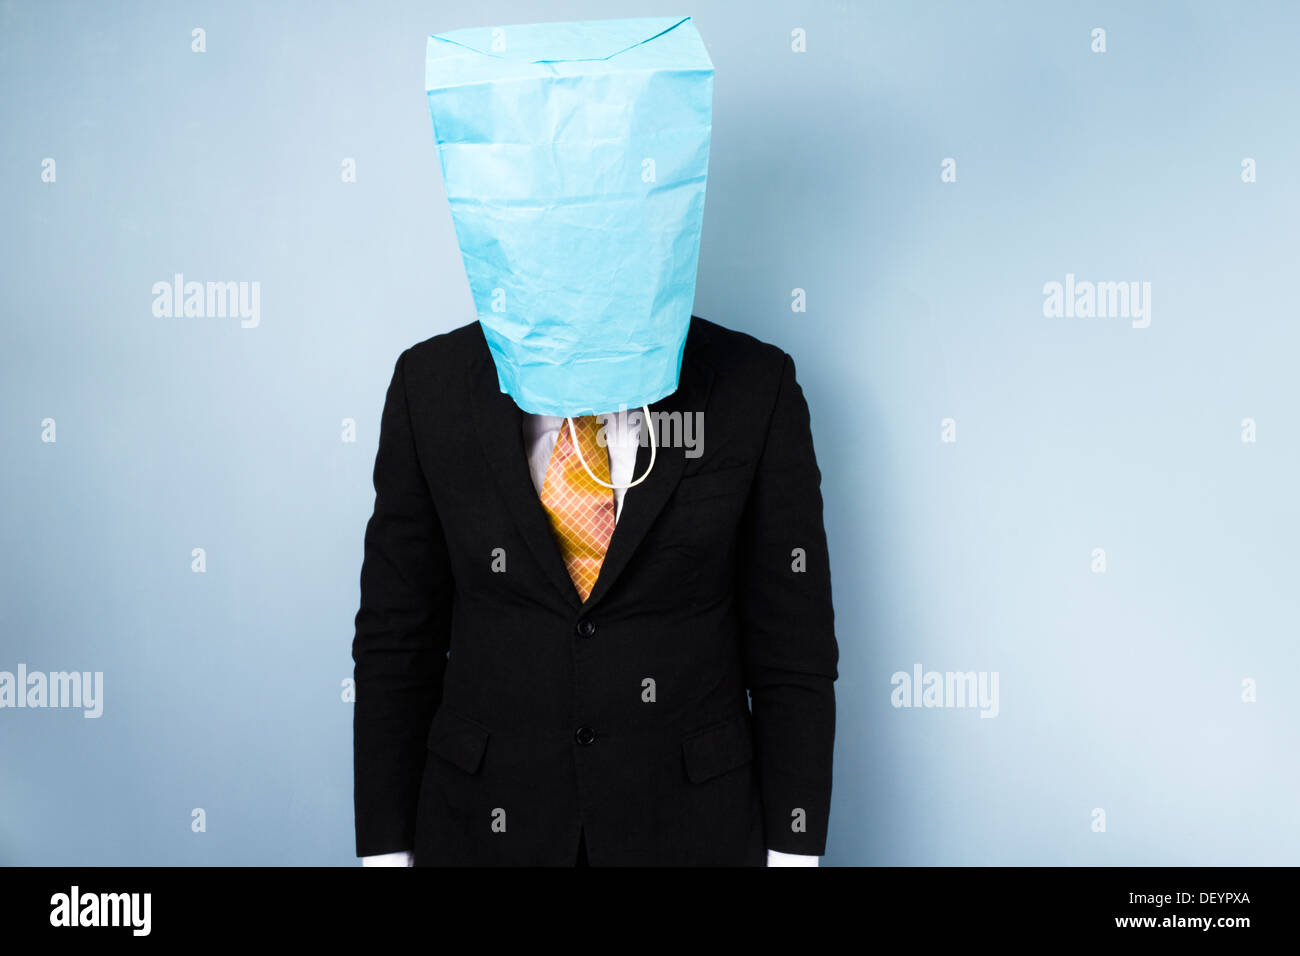 Ashamed businessman is hiding his face inside a paper bag - Stock Image